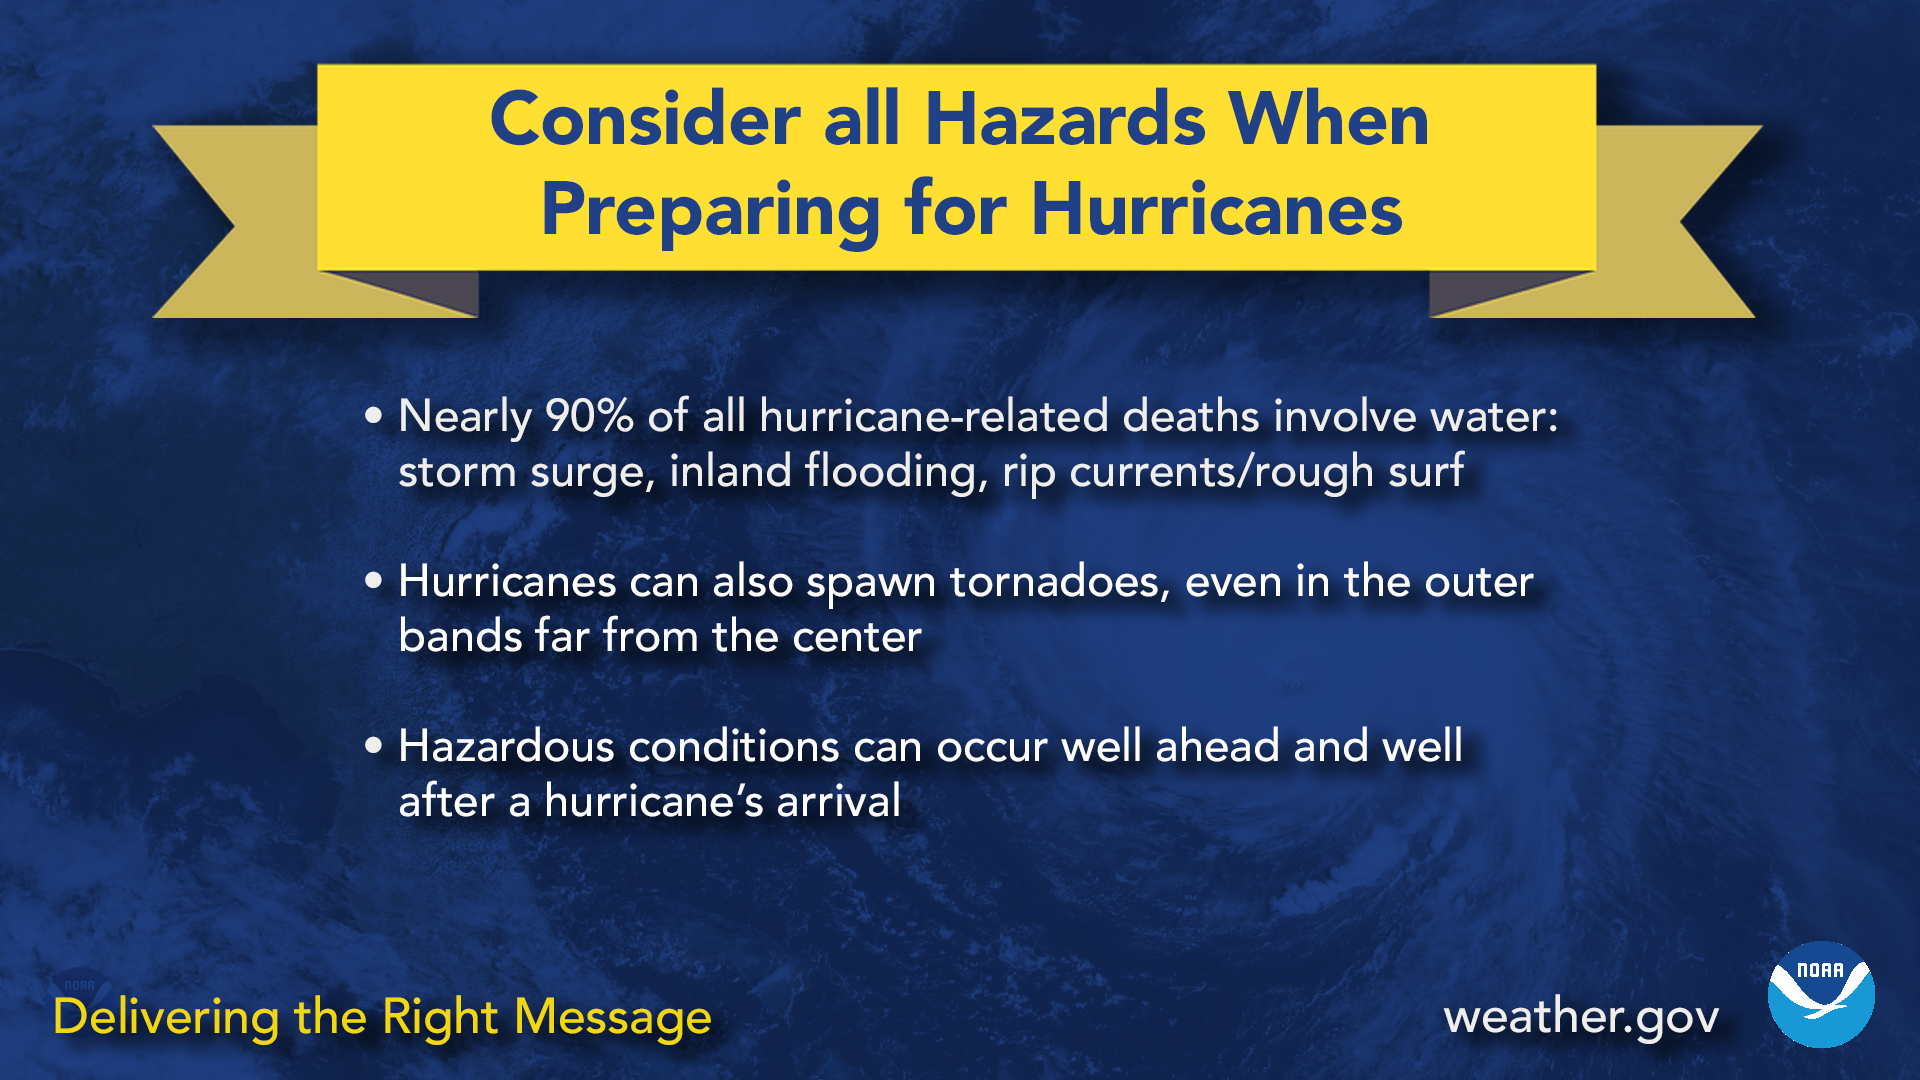 Consider all hazards when preparing for hurricanes